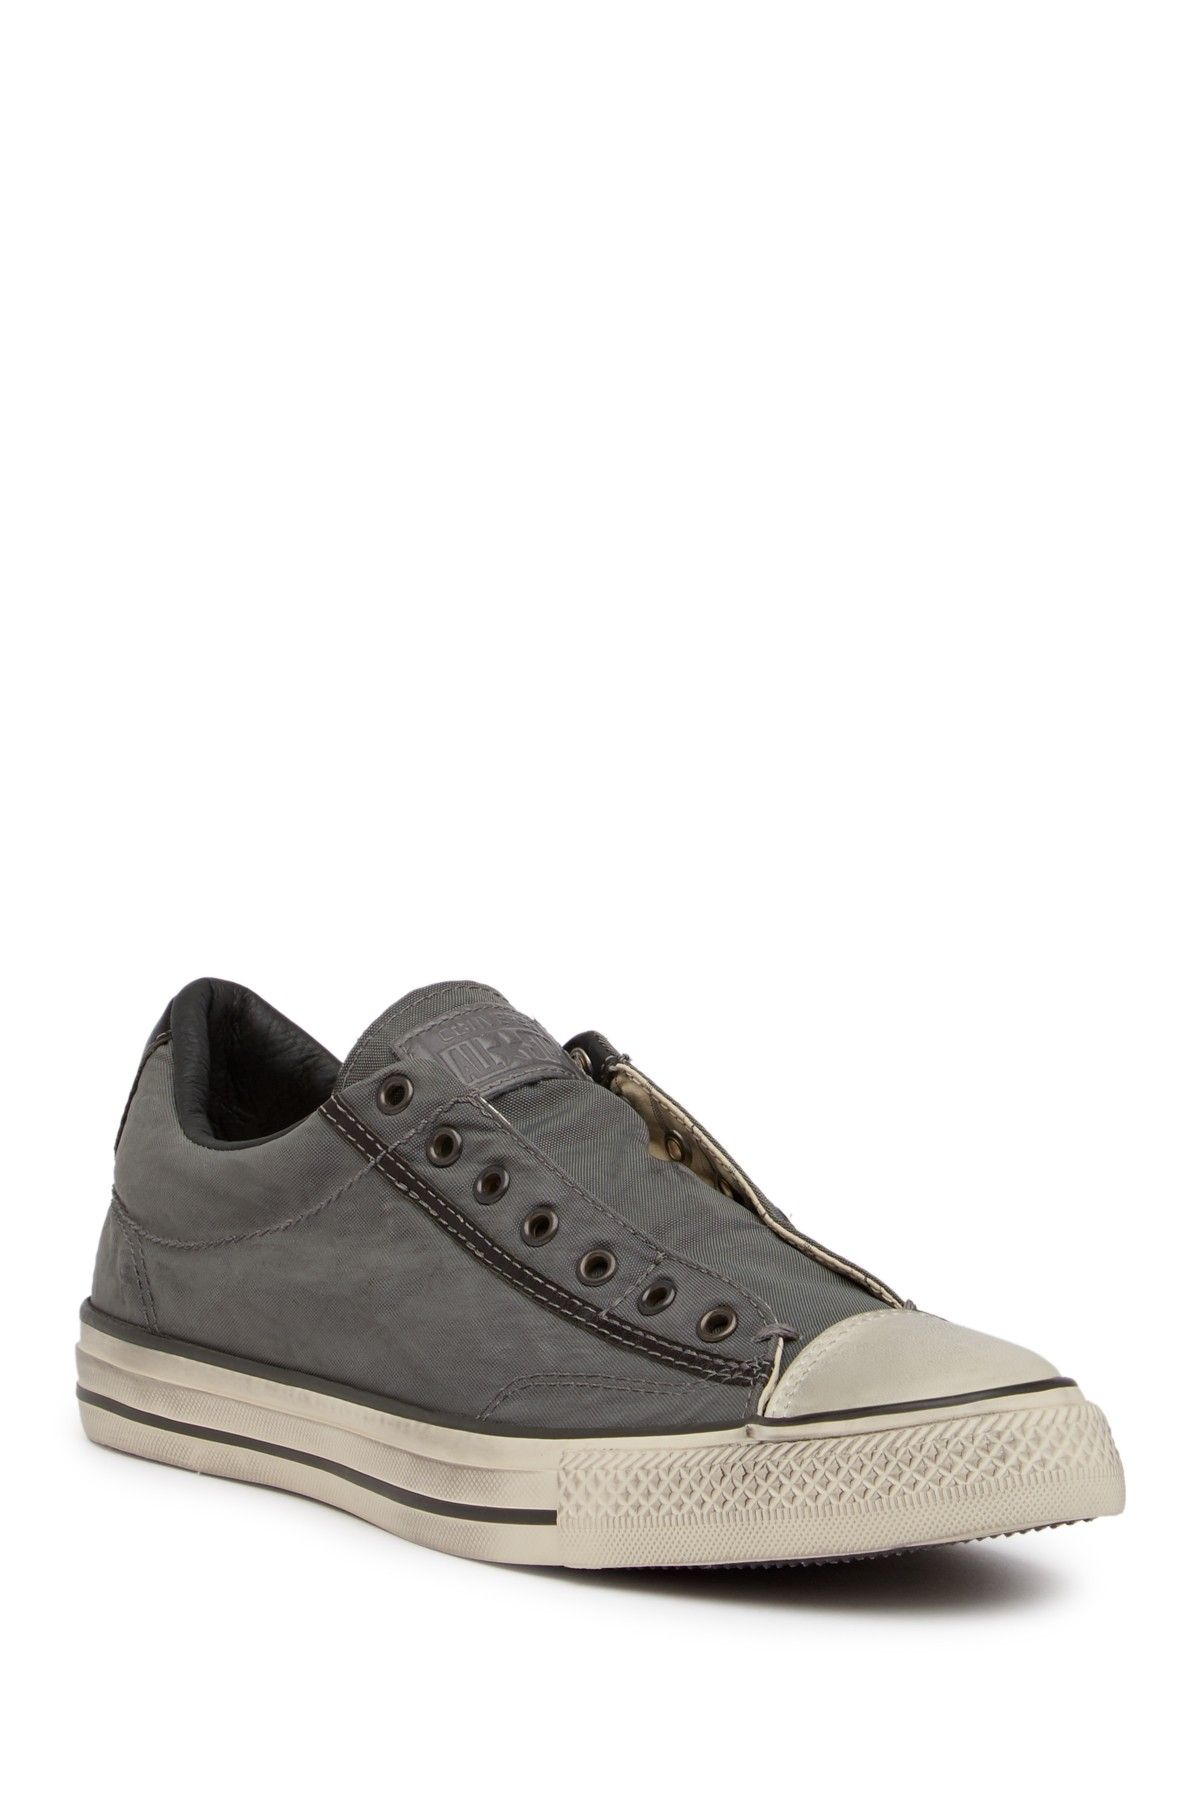 Converse Chuck Taylor All Star Vintage Laceless Slip On